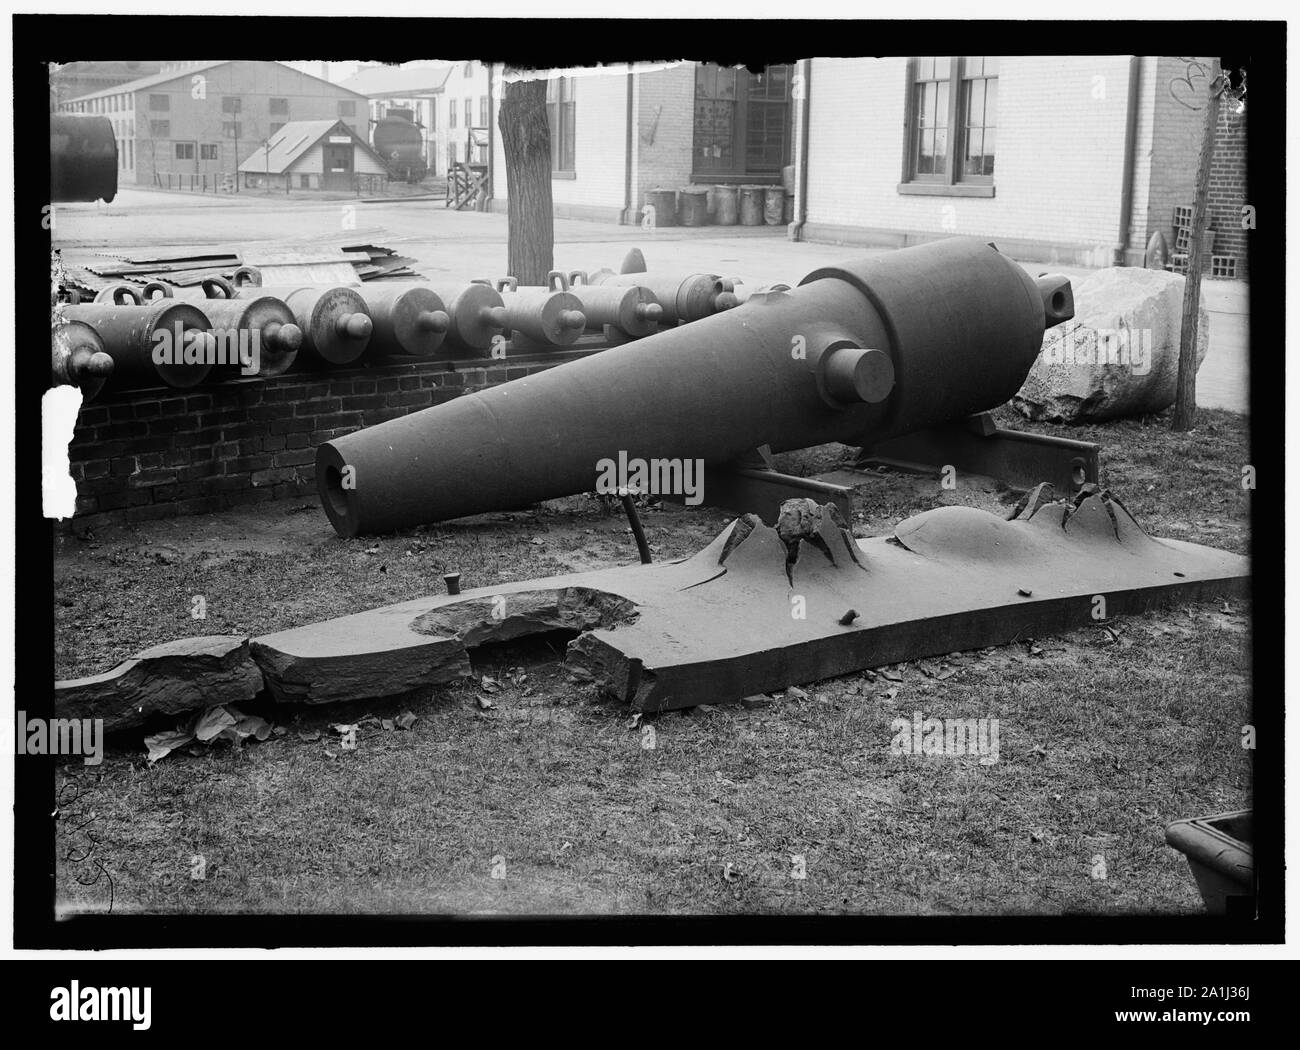 NAVY YARD, U.S., WASHINGTON. MORLARS, CANNON, TARGETS ON LAWN Stock Photo